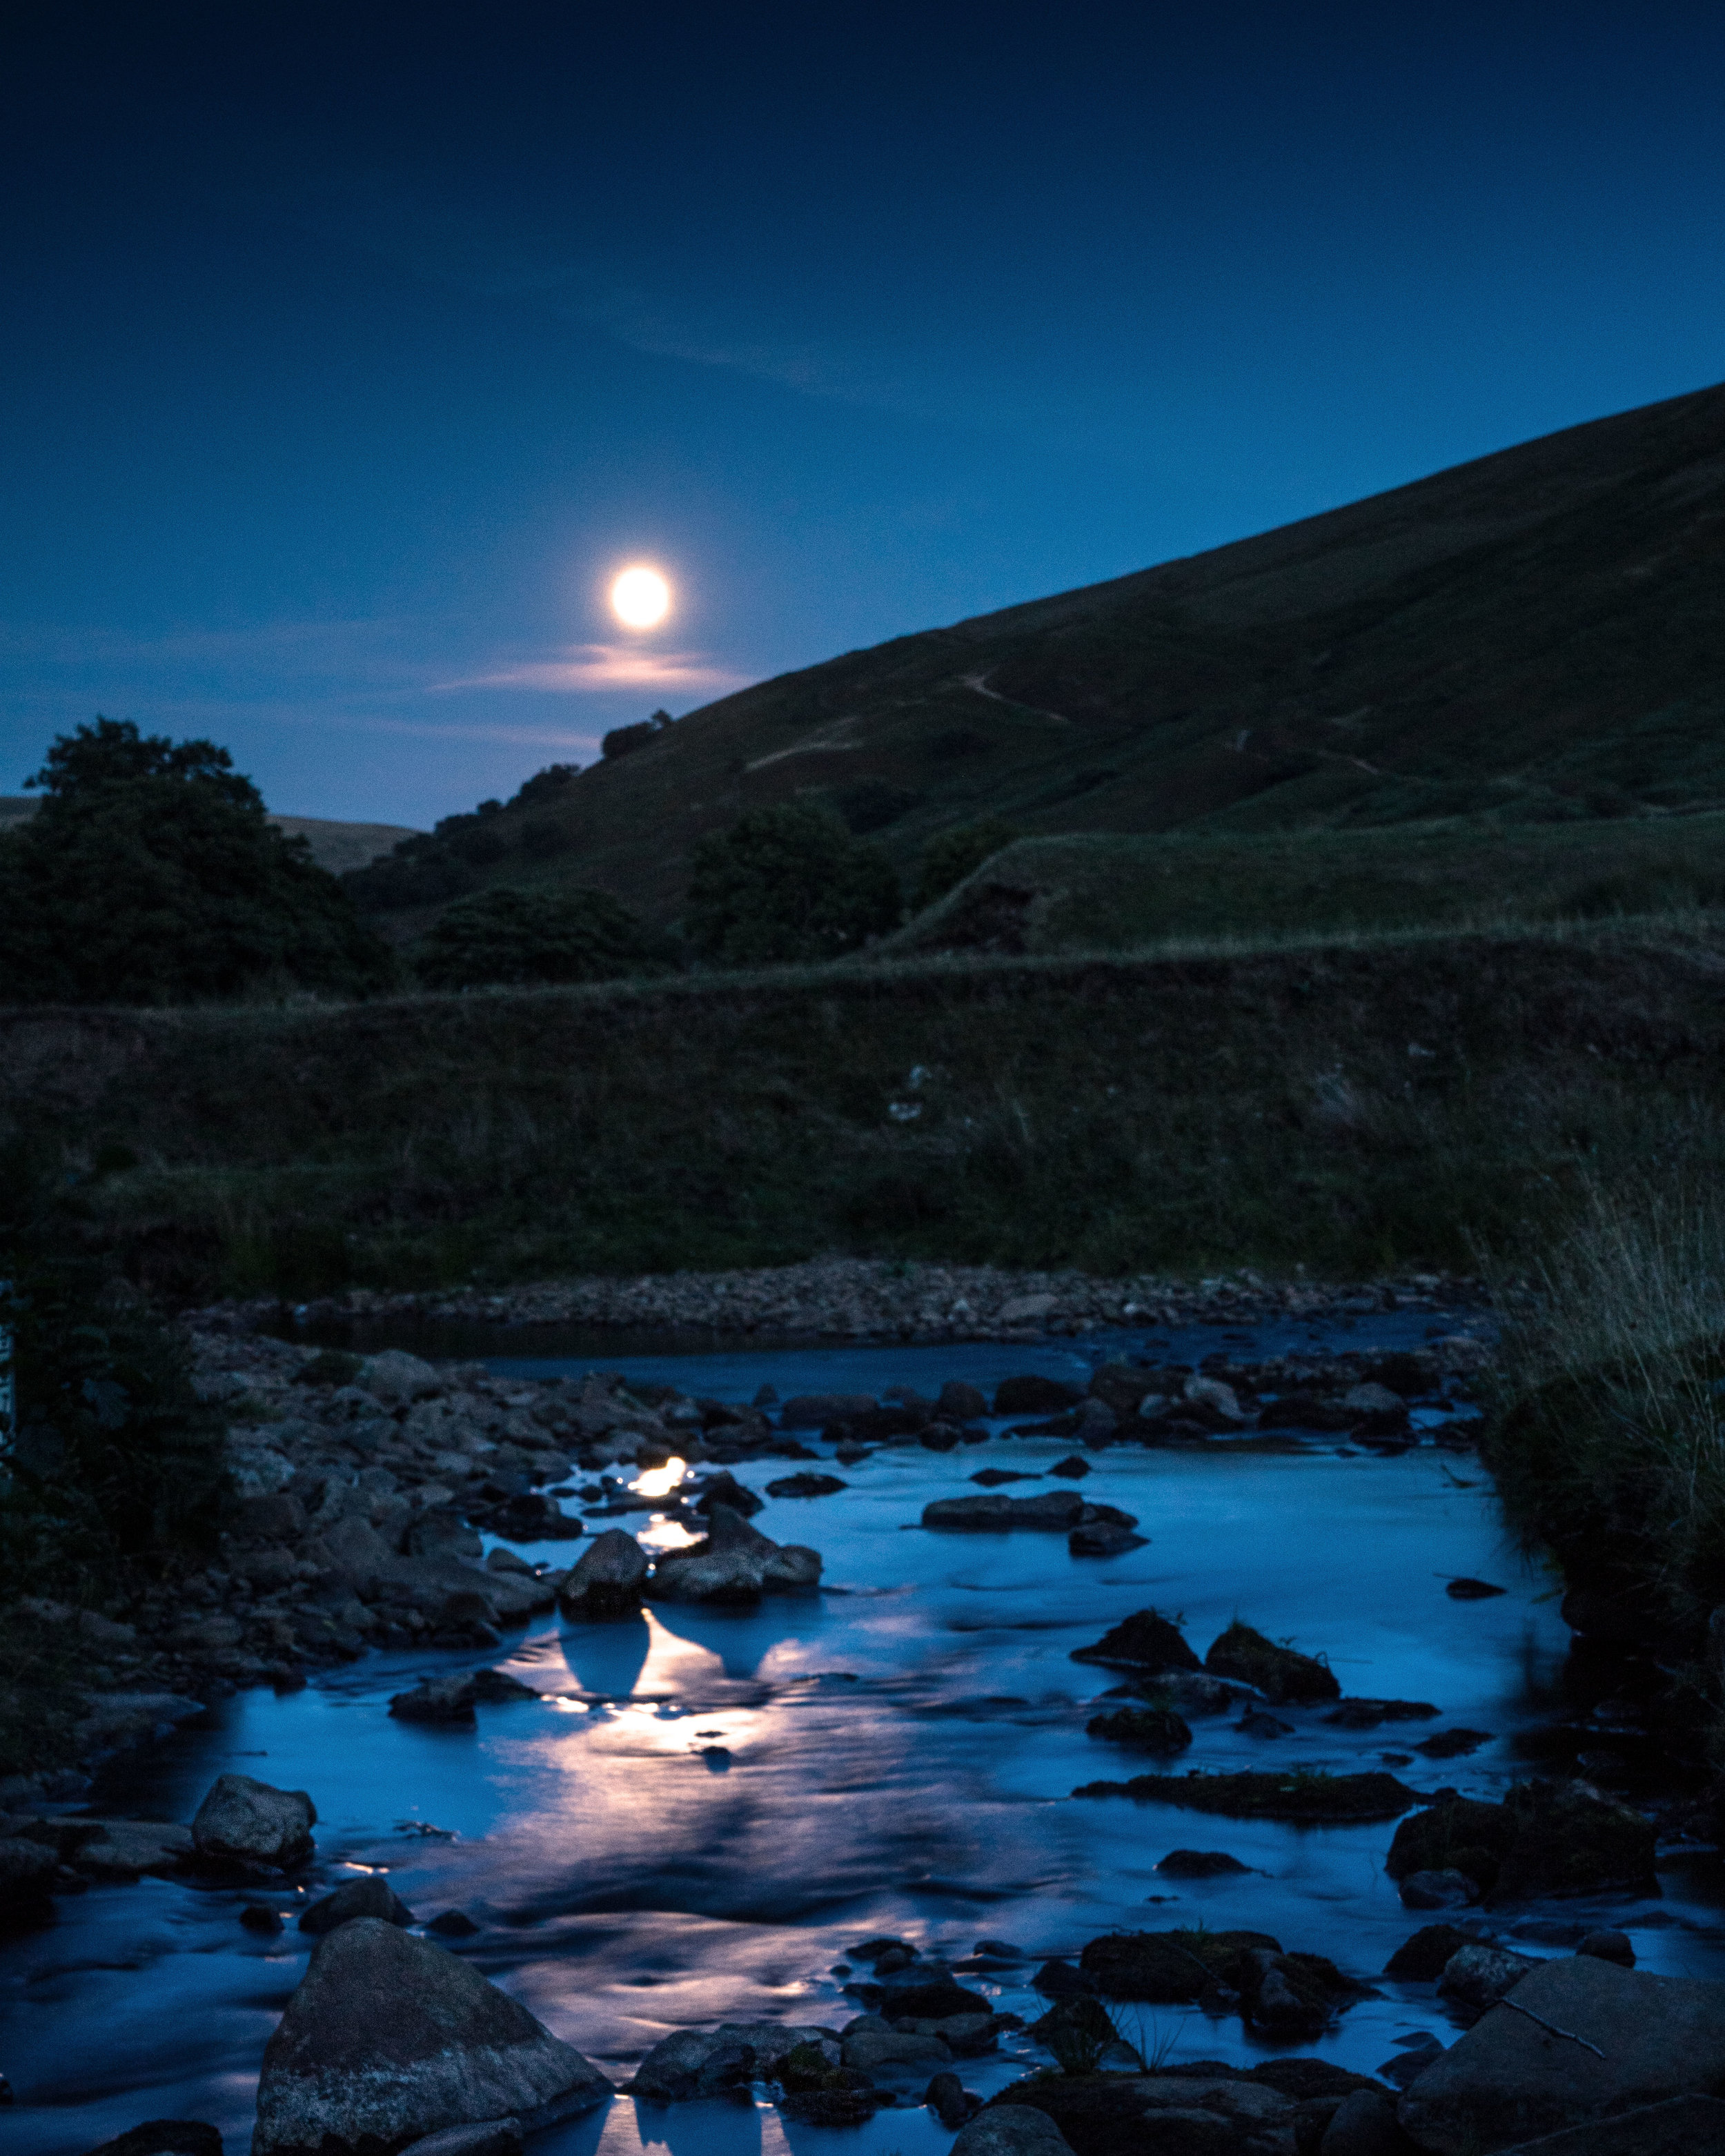 And as we got back to the car I managed to grab this which was shot at 70mm as the moon came up and reflected off the river.